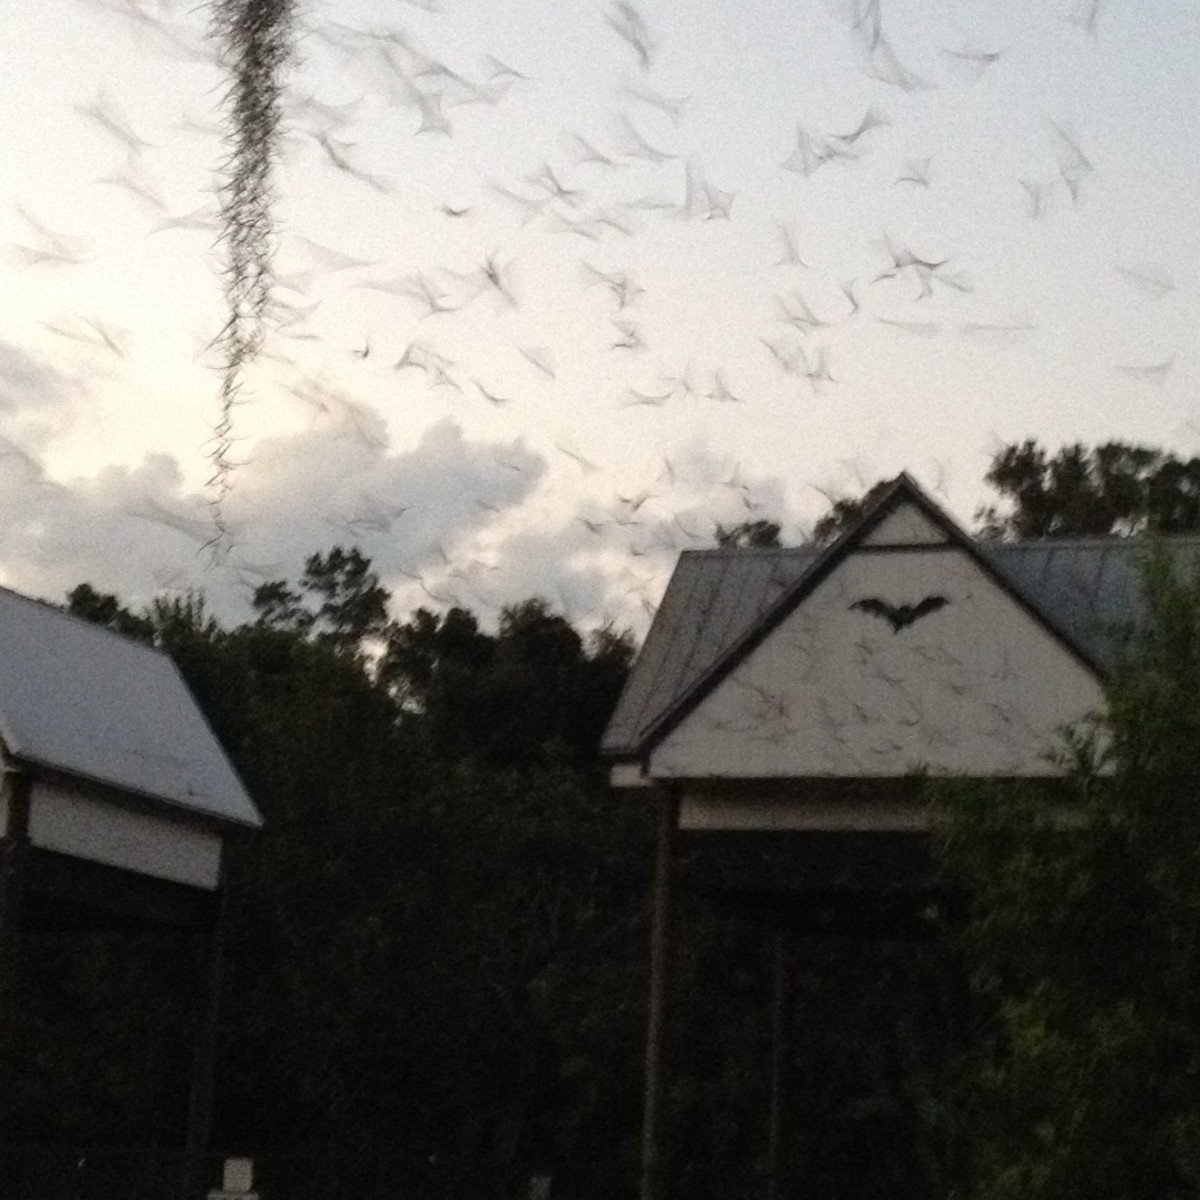 Bats emerging from the UF bat houses at sunset.  There was originally only one bat house, but due in part to overpopulation, it collapsed.  The original bat house was restored and another was built beside it.